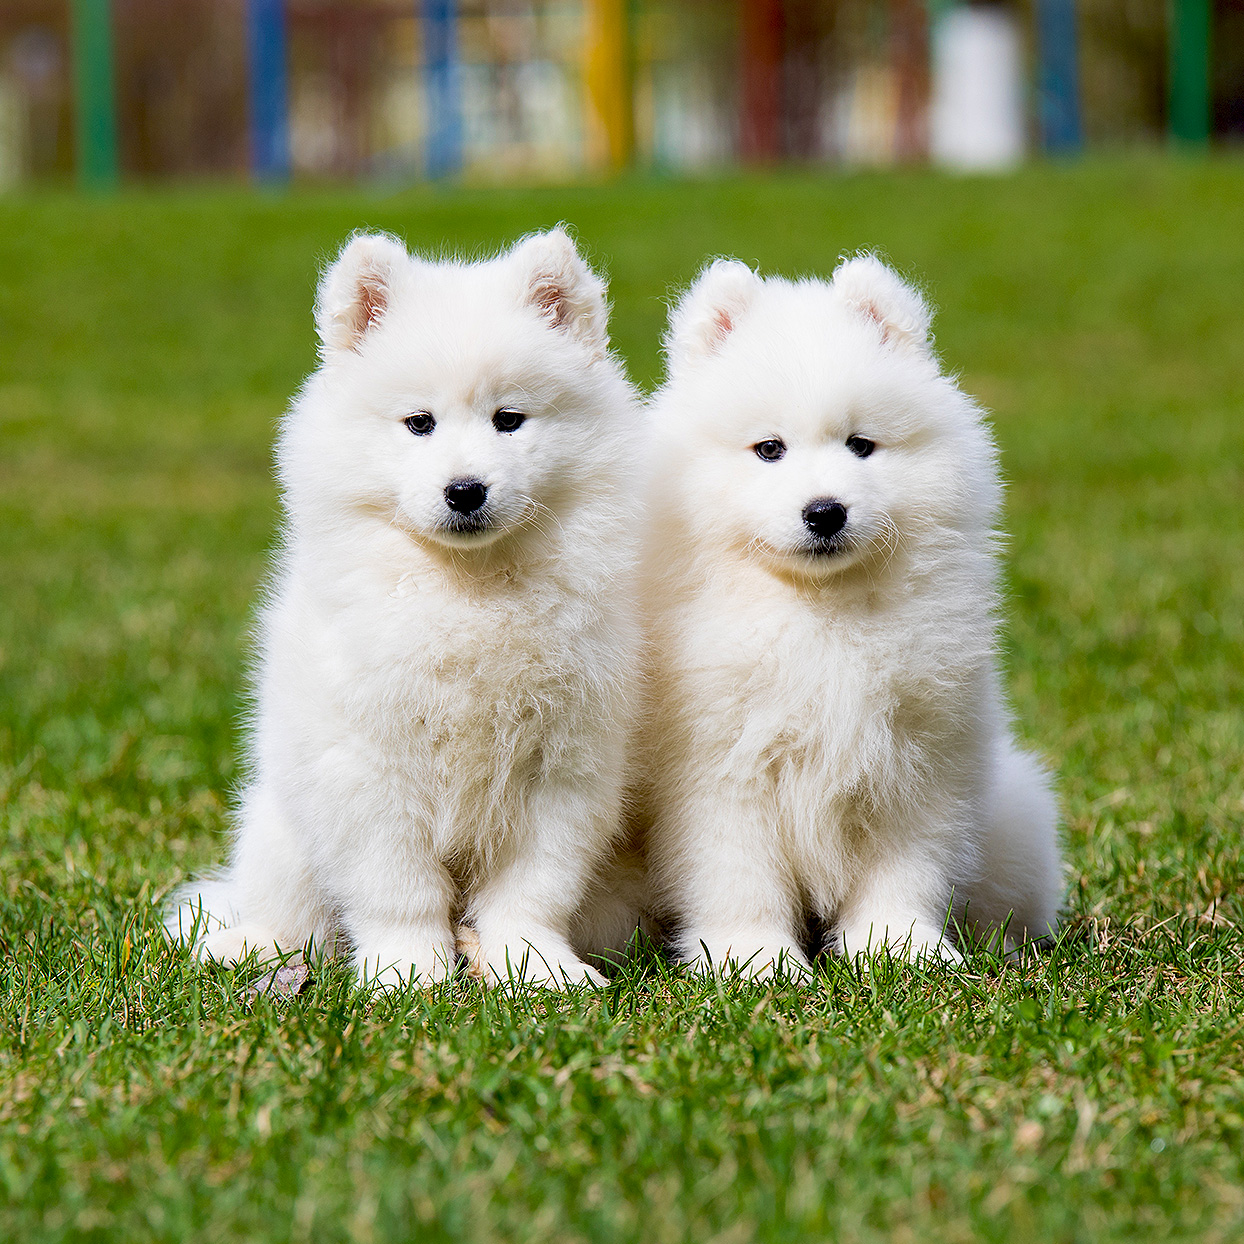 Two samoyed puppies sit next to each other in grass